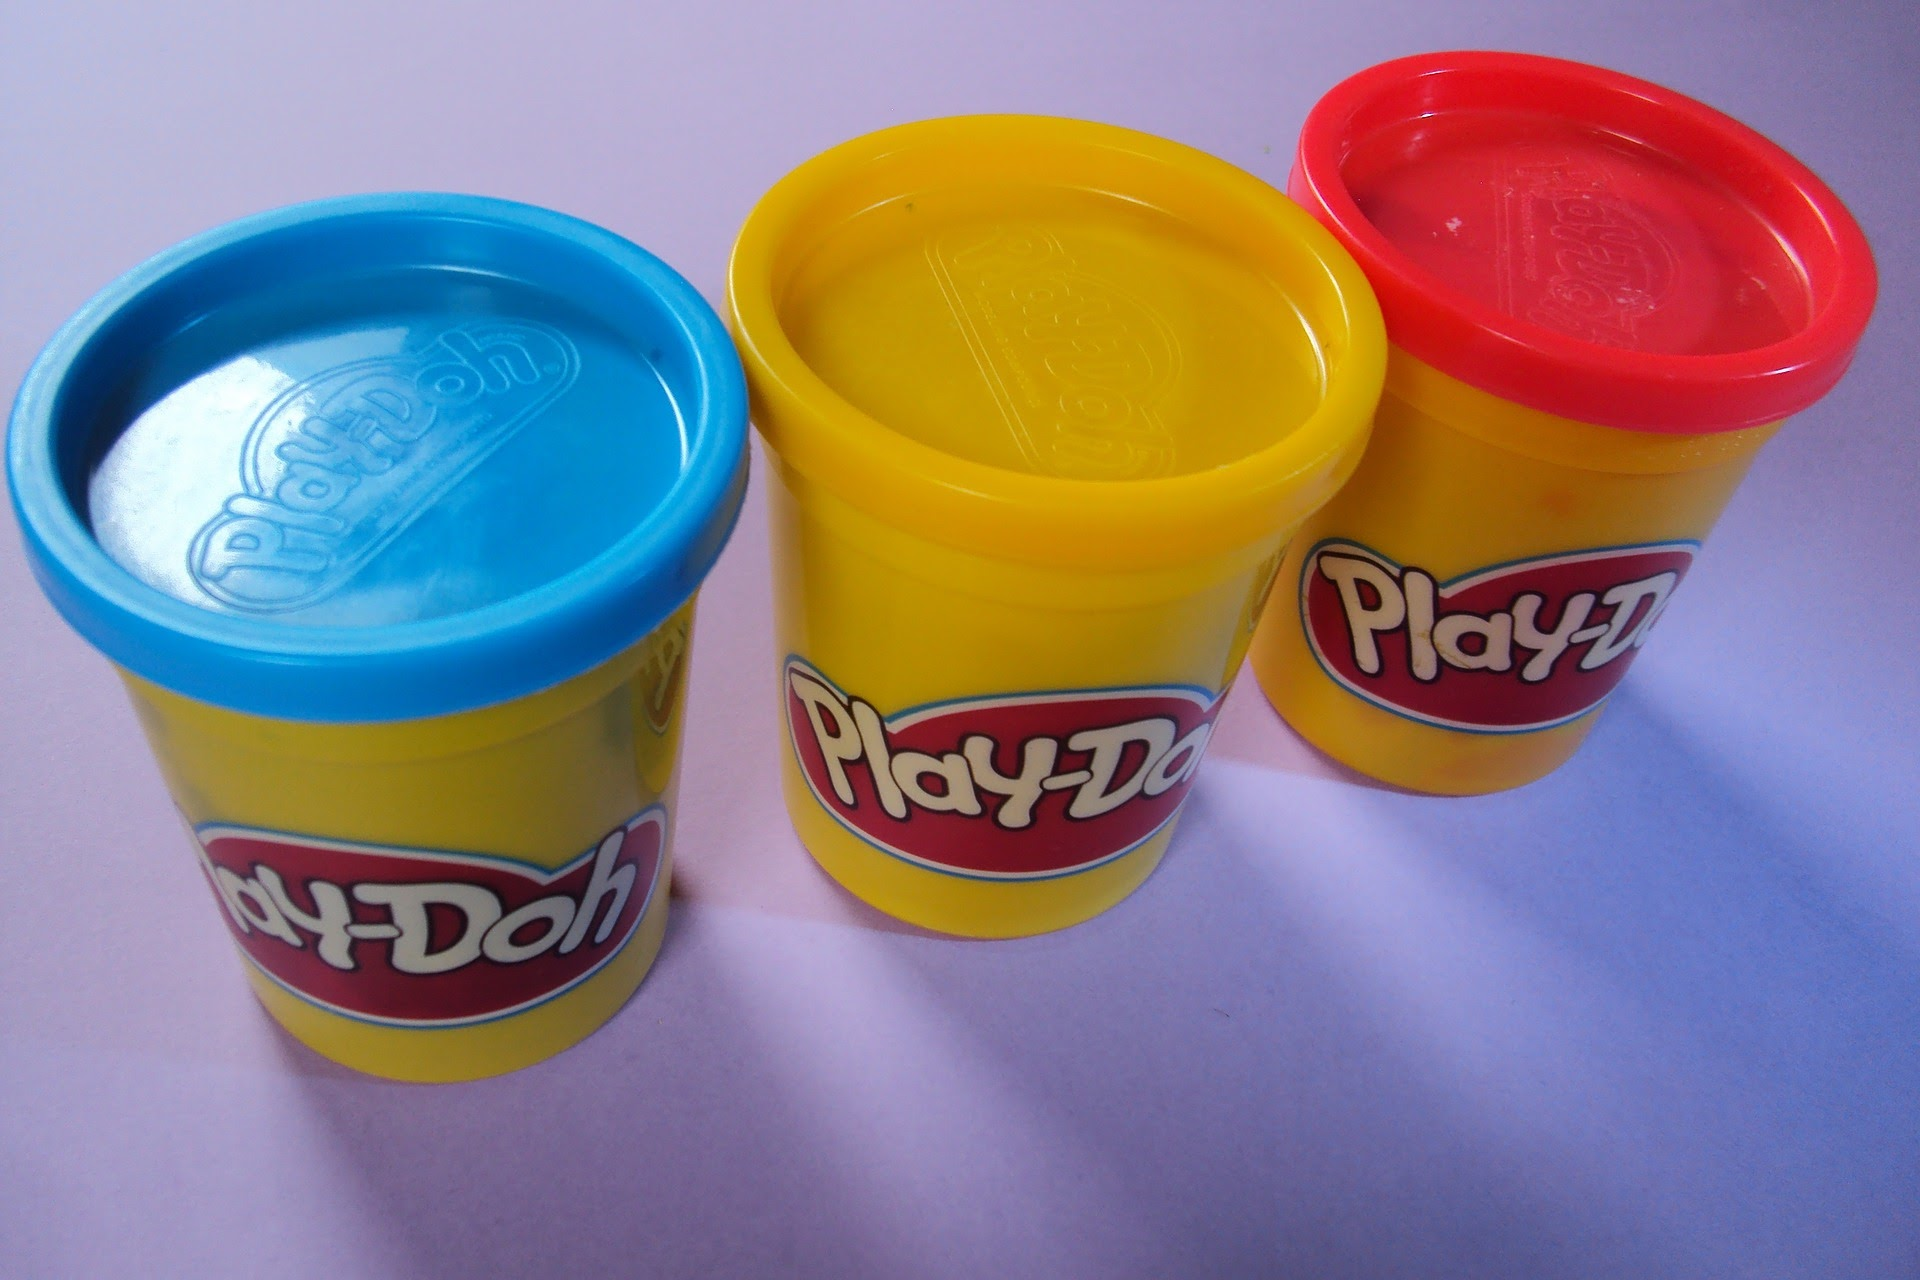 An image of blue, yellow, and red Play-Doh containers.